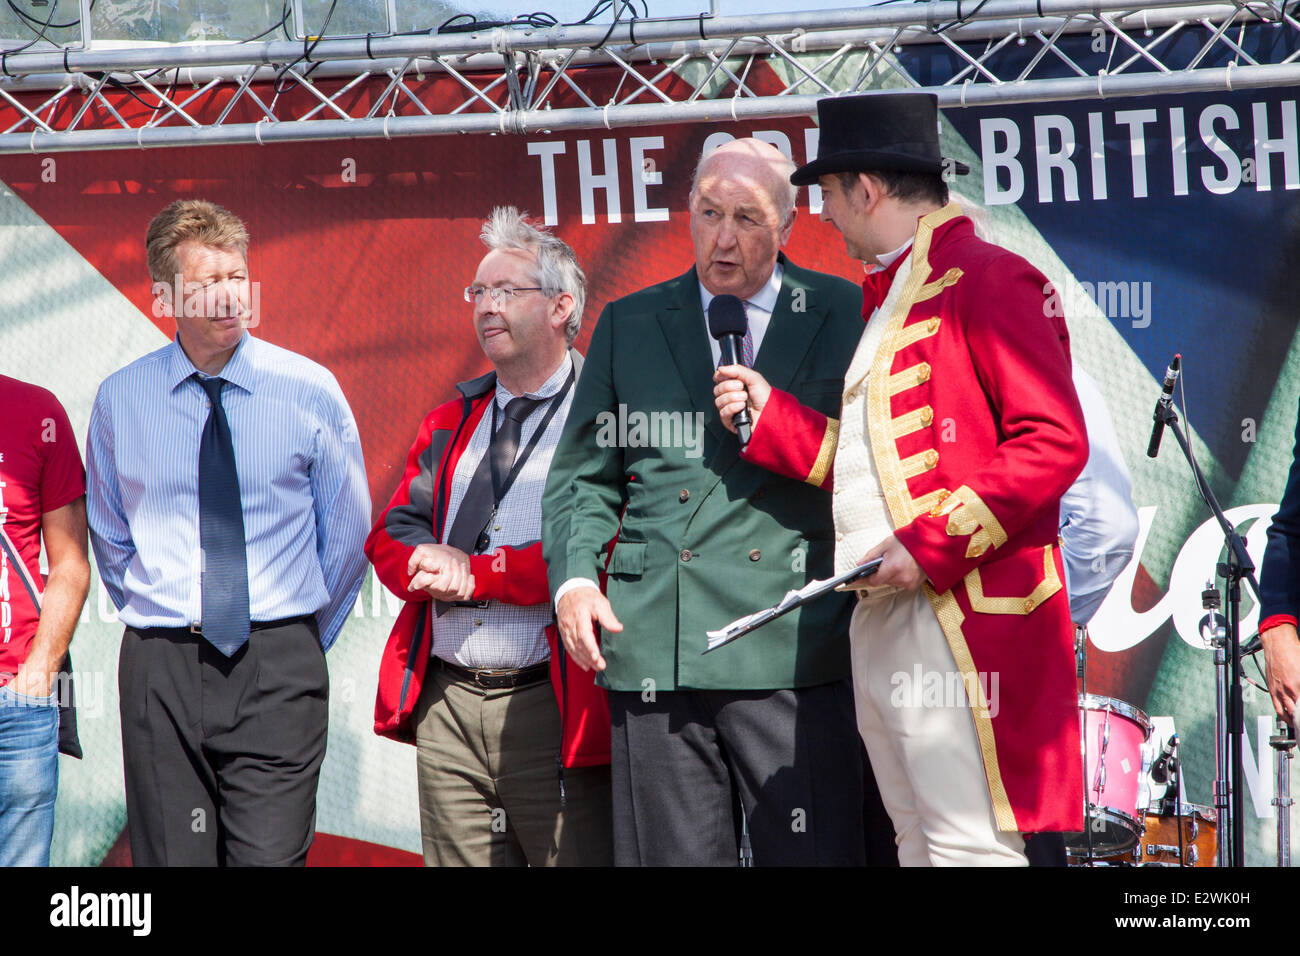 Bakewell, Derbyshire, UK. 20 June 2014. Sir Peregrine Cavendish, the current Duke of Devonshire and resident at - Stock Image